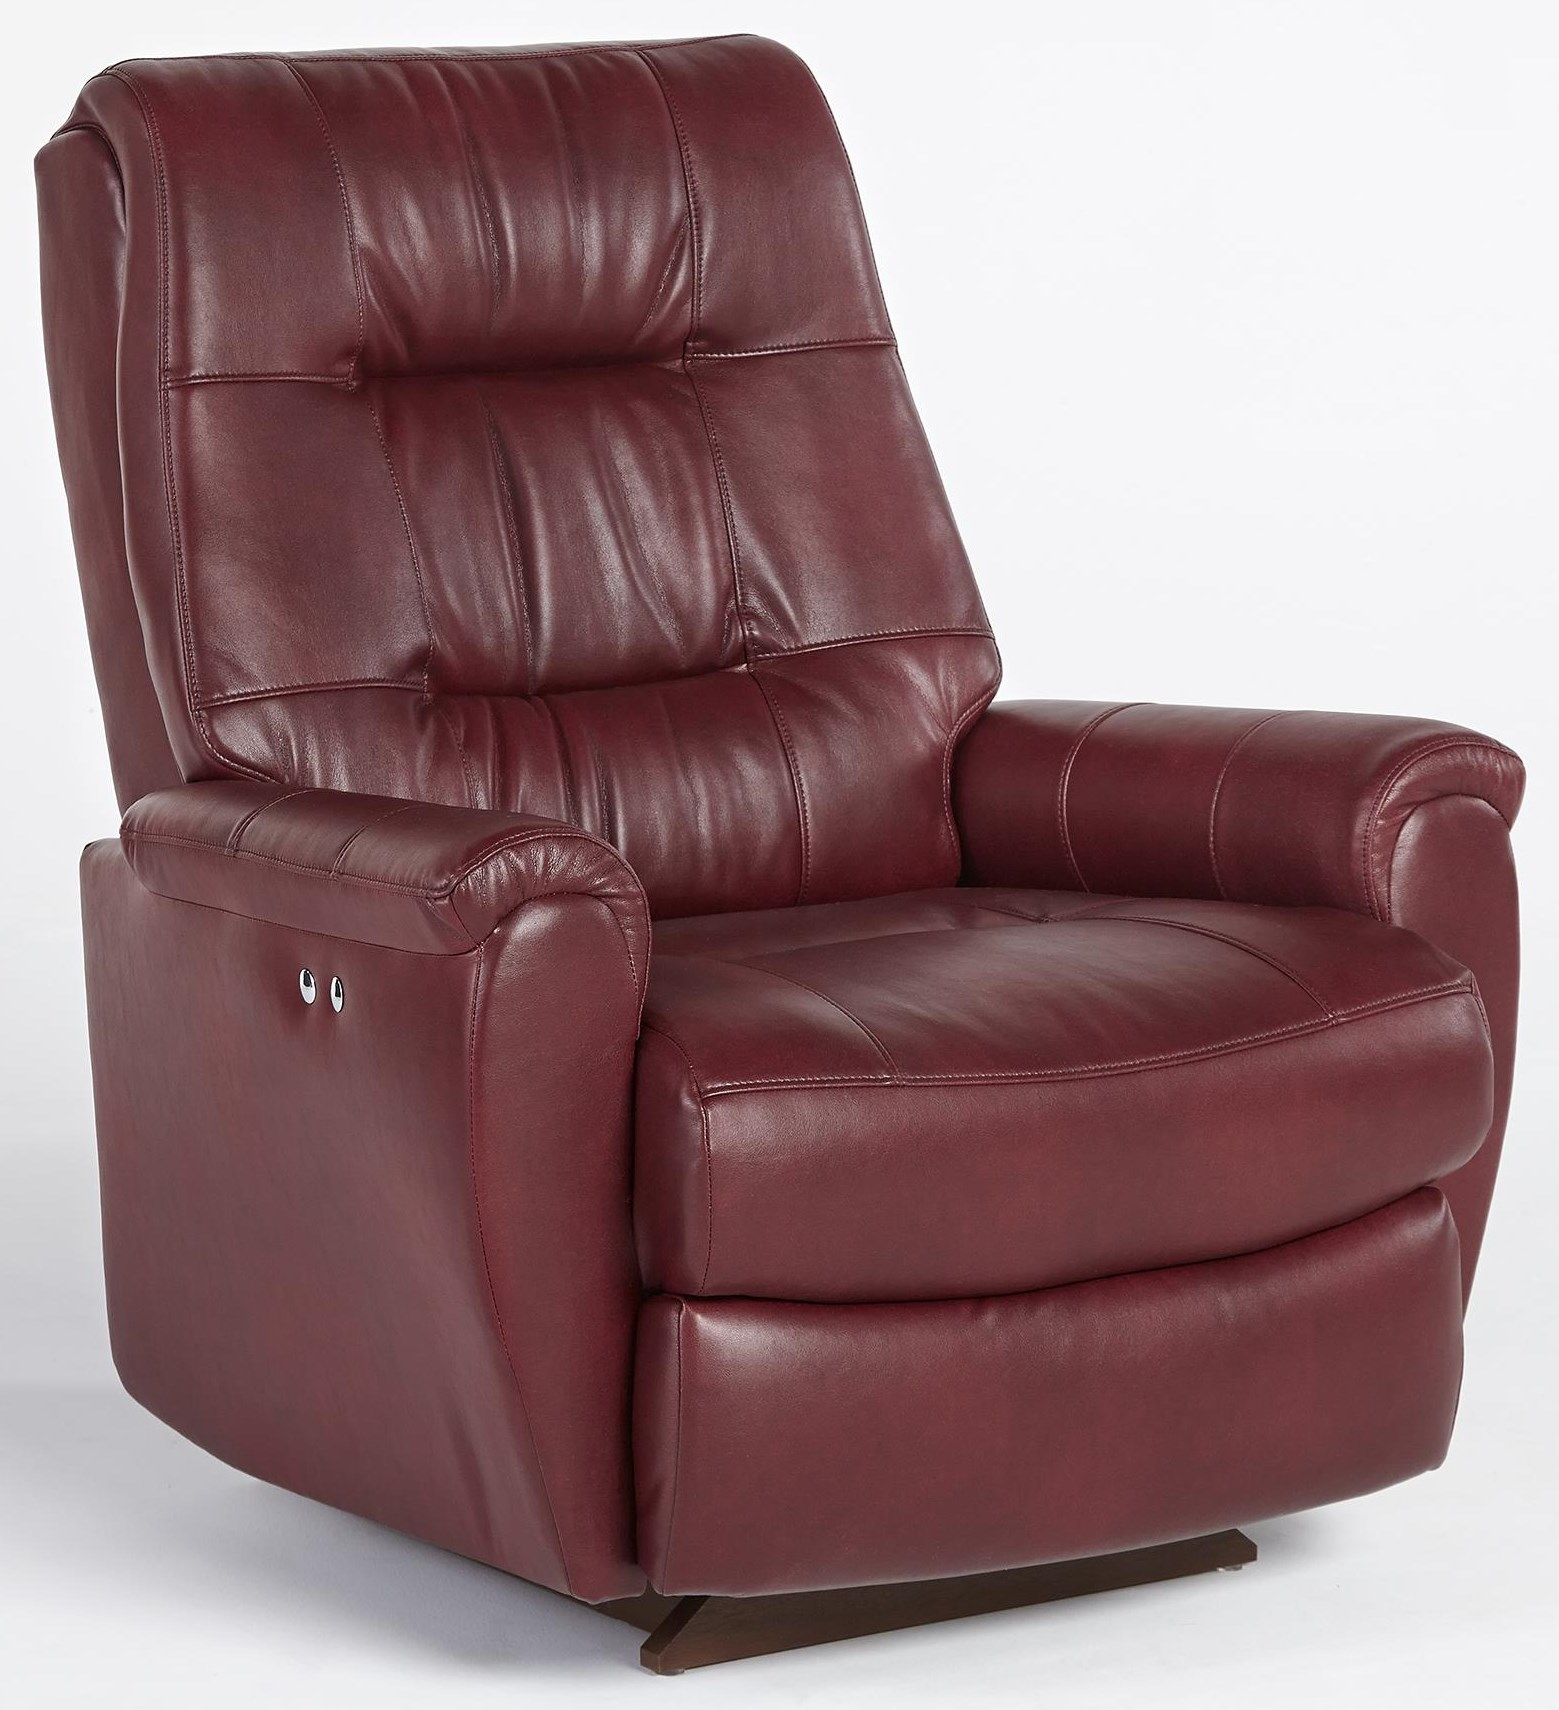 Petite Recliners Power Lift Recliner by Best Home Furnishings at Saugerties Furniture Mart